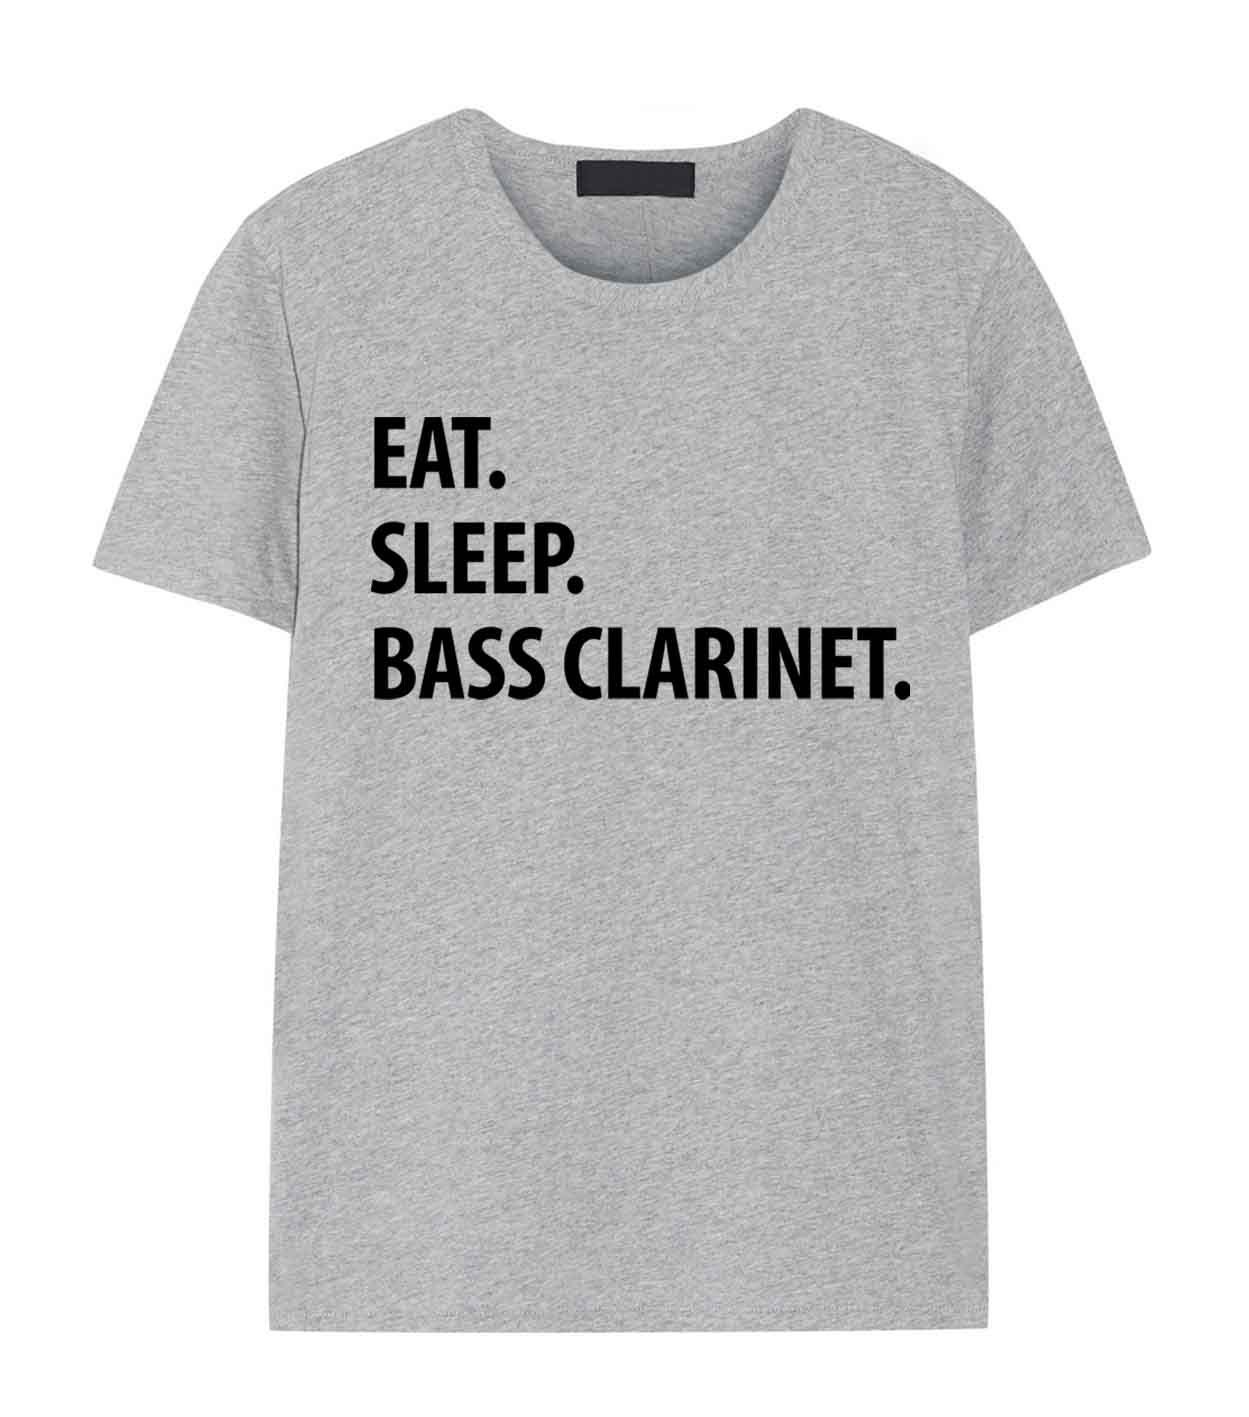 Bass Clarinet TShirt Mens Womens Gifts for Bass Clarinet Eat Sleep Bass Clarinet shirts  1144